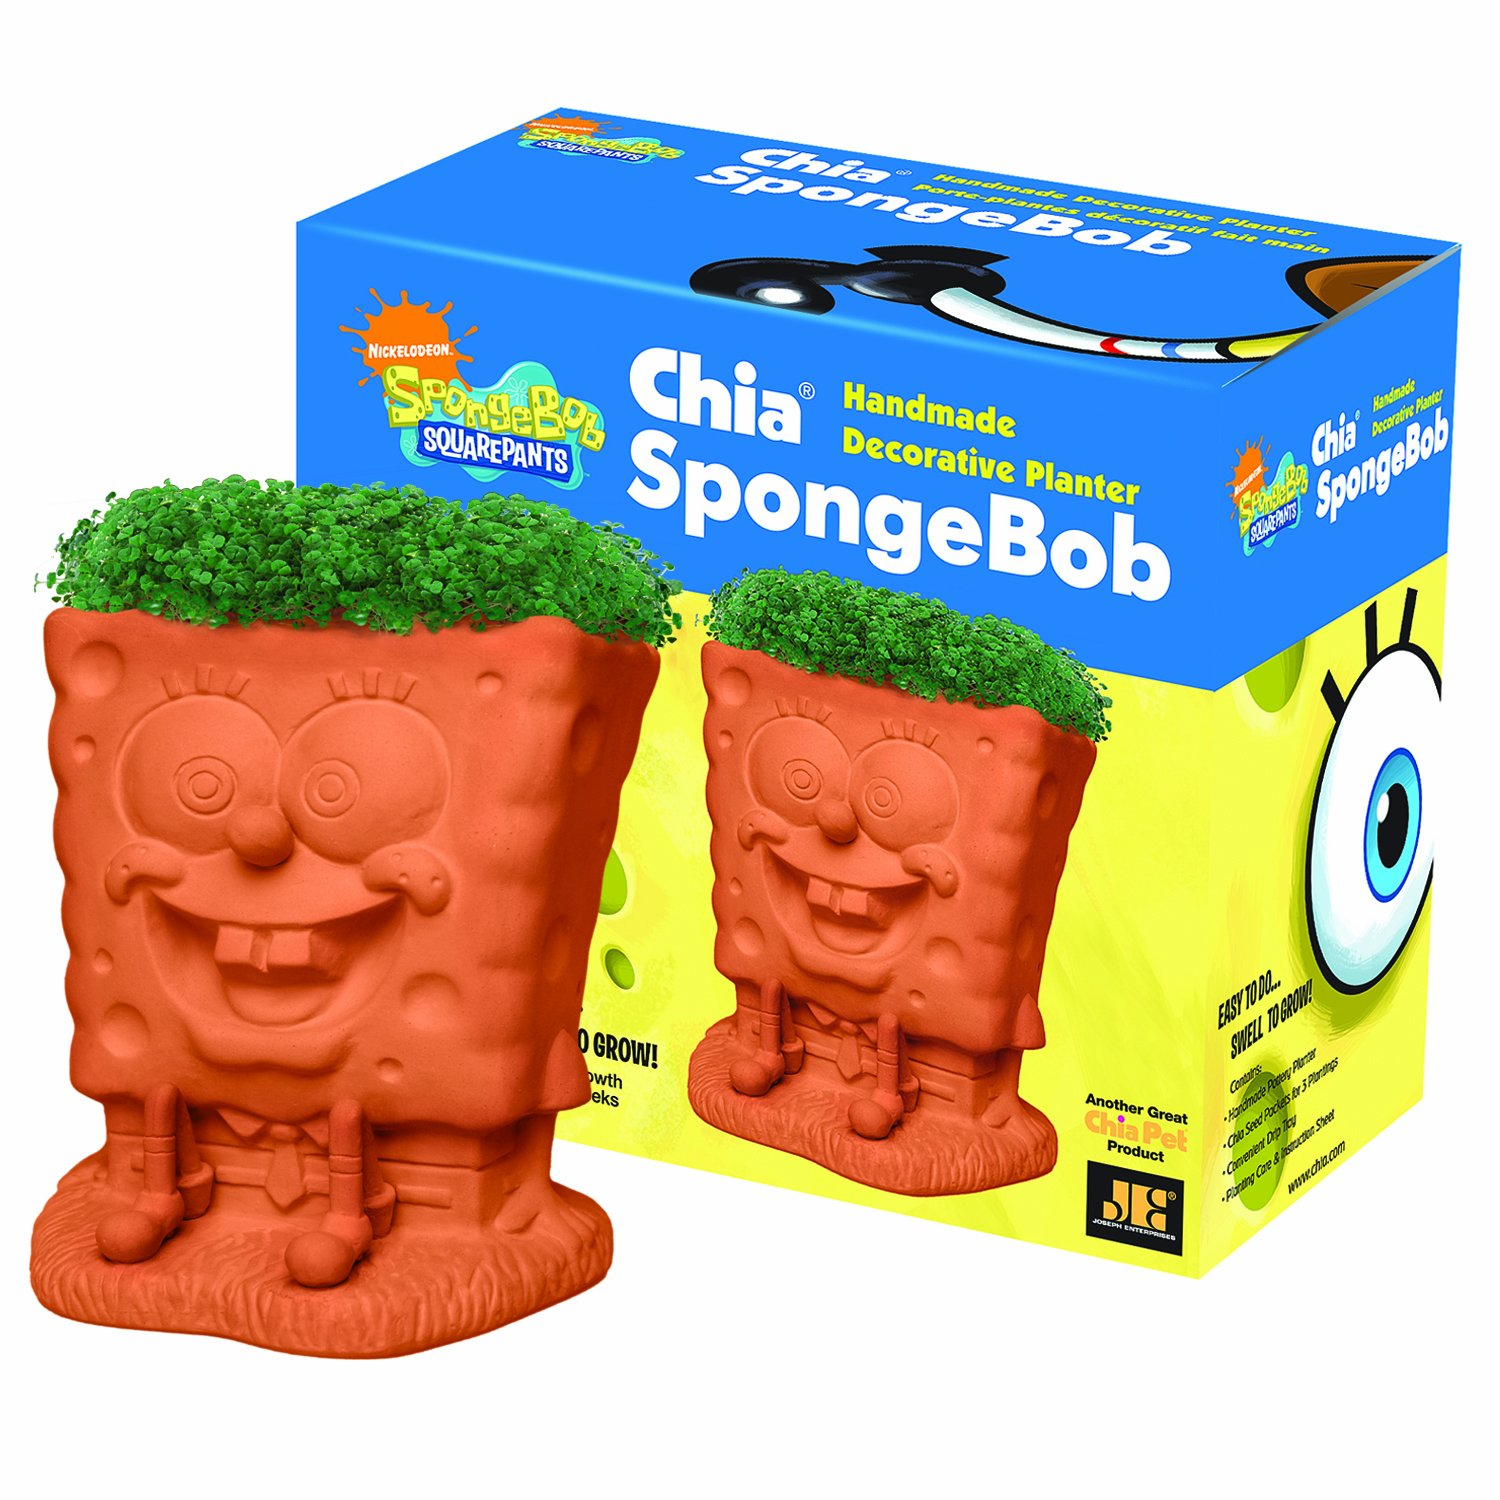 Chia SpongeBob Handmade Decorative Planter by Chia